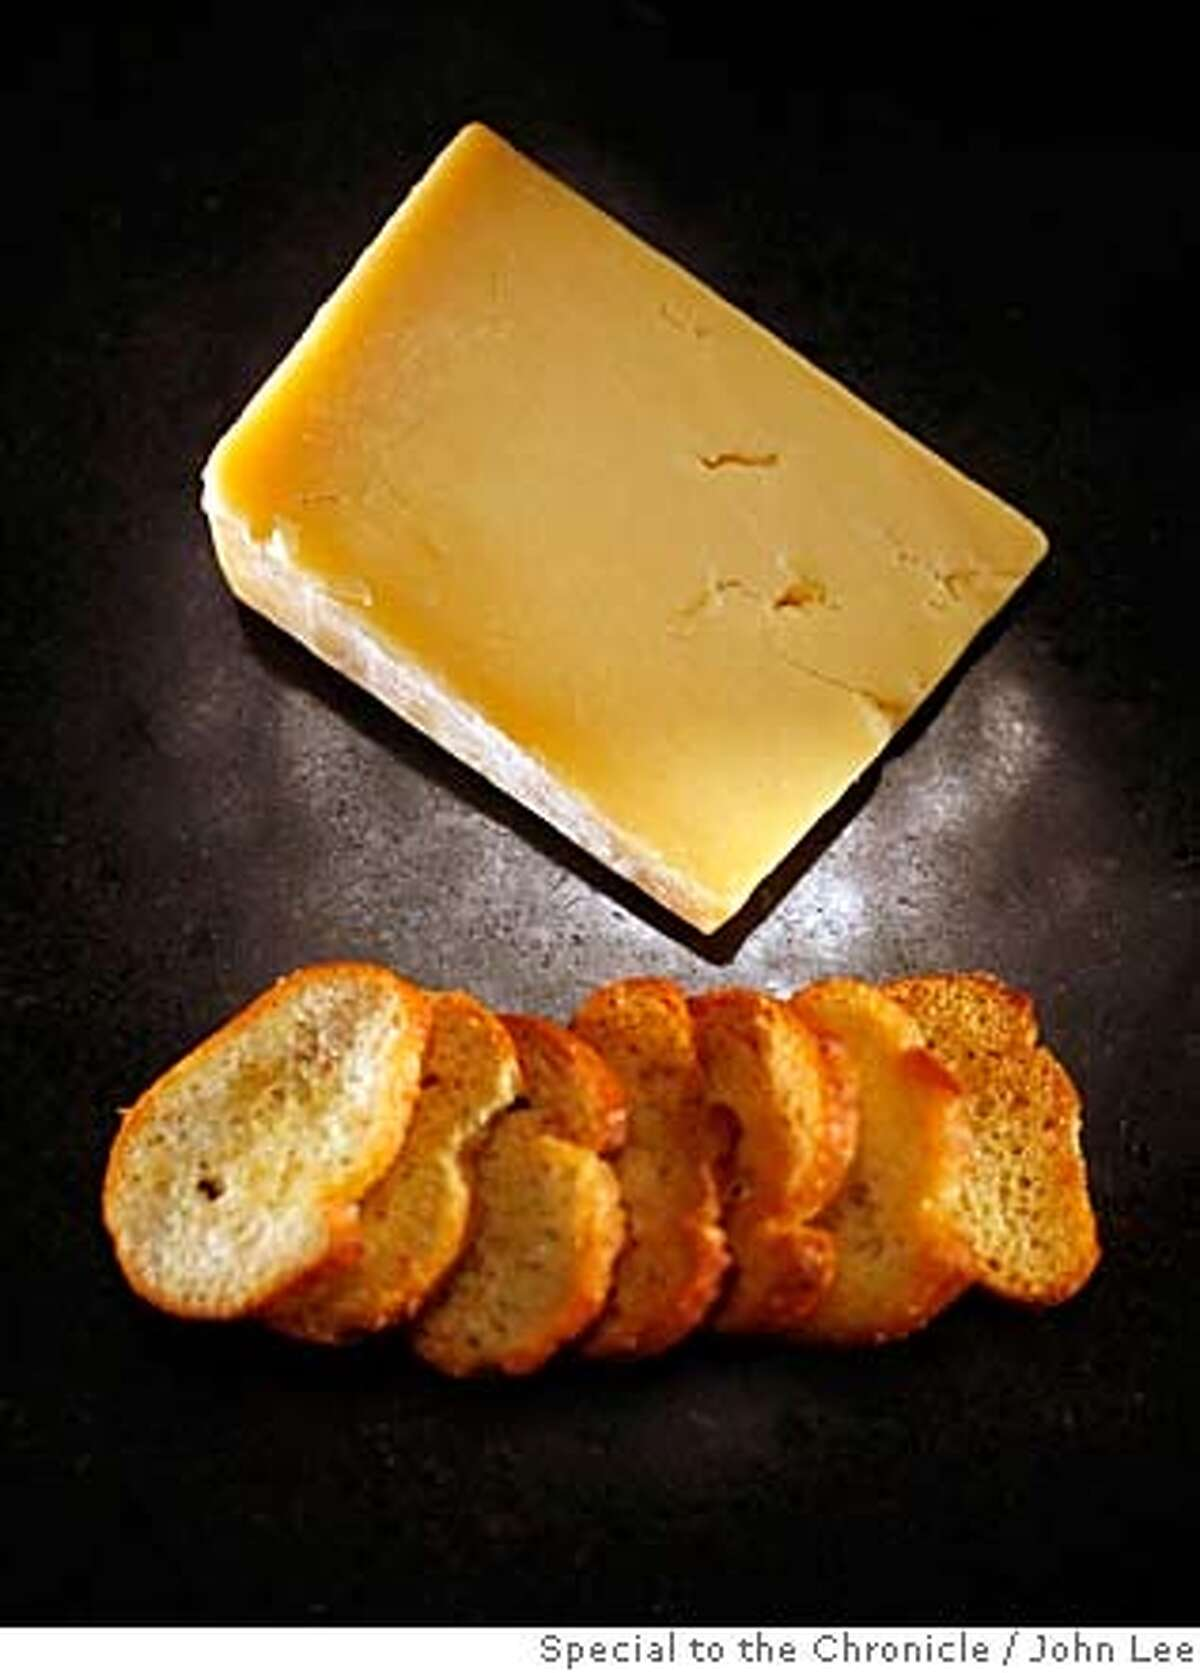 CHEESE21_JOHNLEE.JPG SAN FRANCISCO, CALIF - DEC 14: Borough Market Cheddar cheese. By JOHN LEE/SPECIAL TO THE CHRONICLE